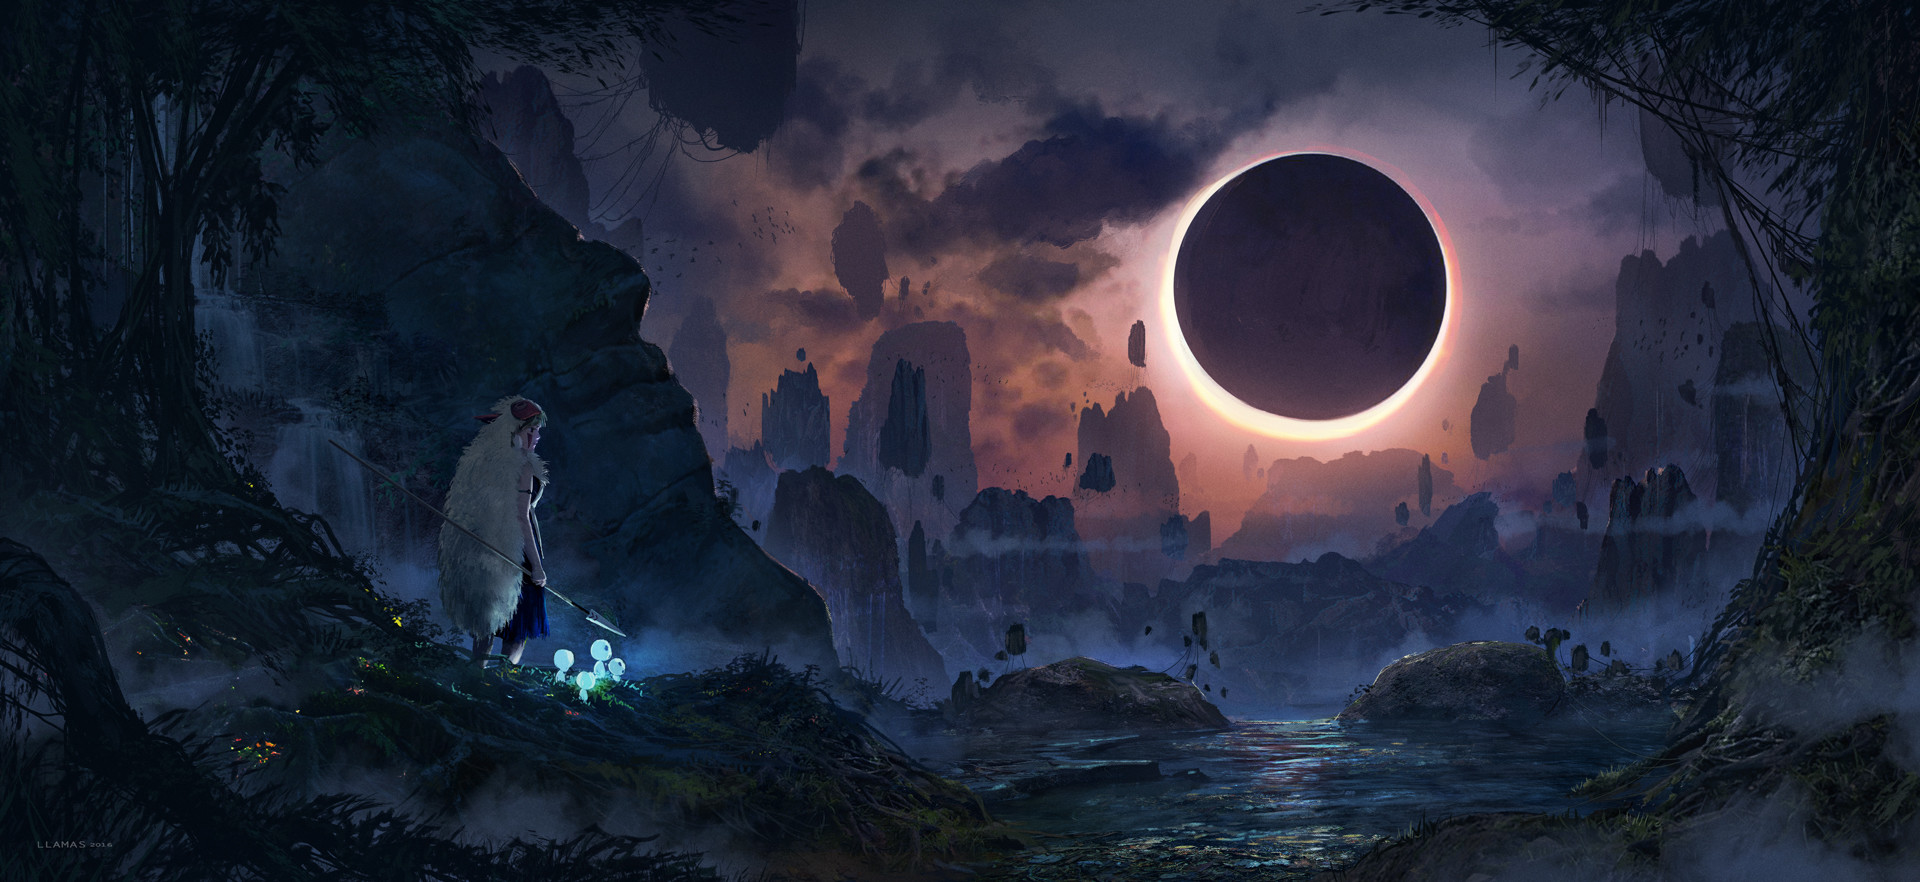 ArtStation-Eclipse-Florent-Llamas-wallpaper-wp3602740